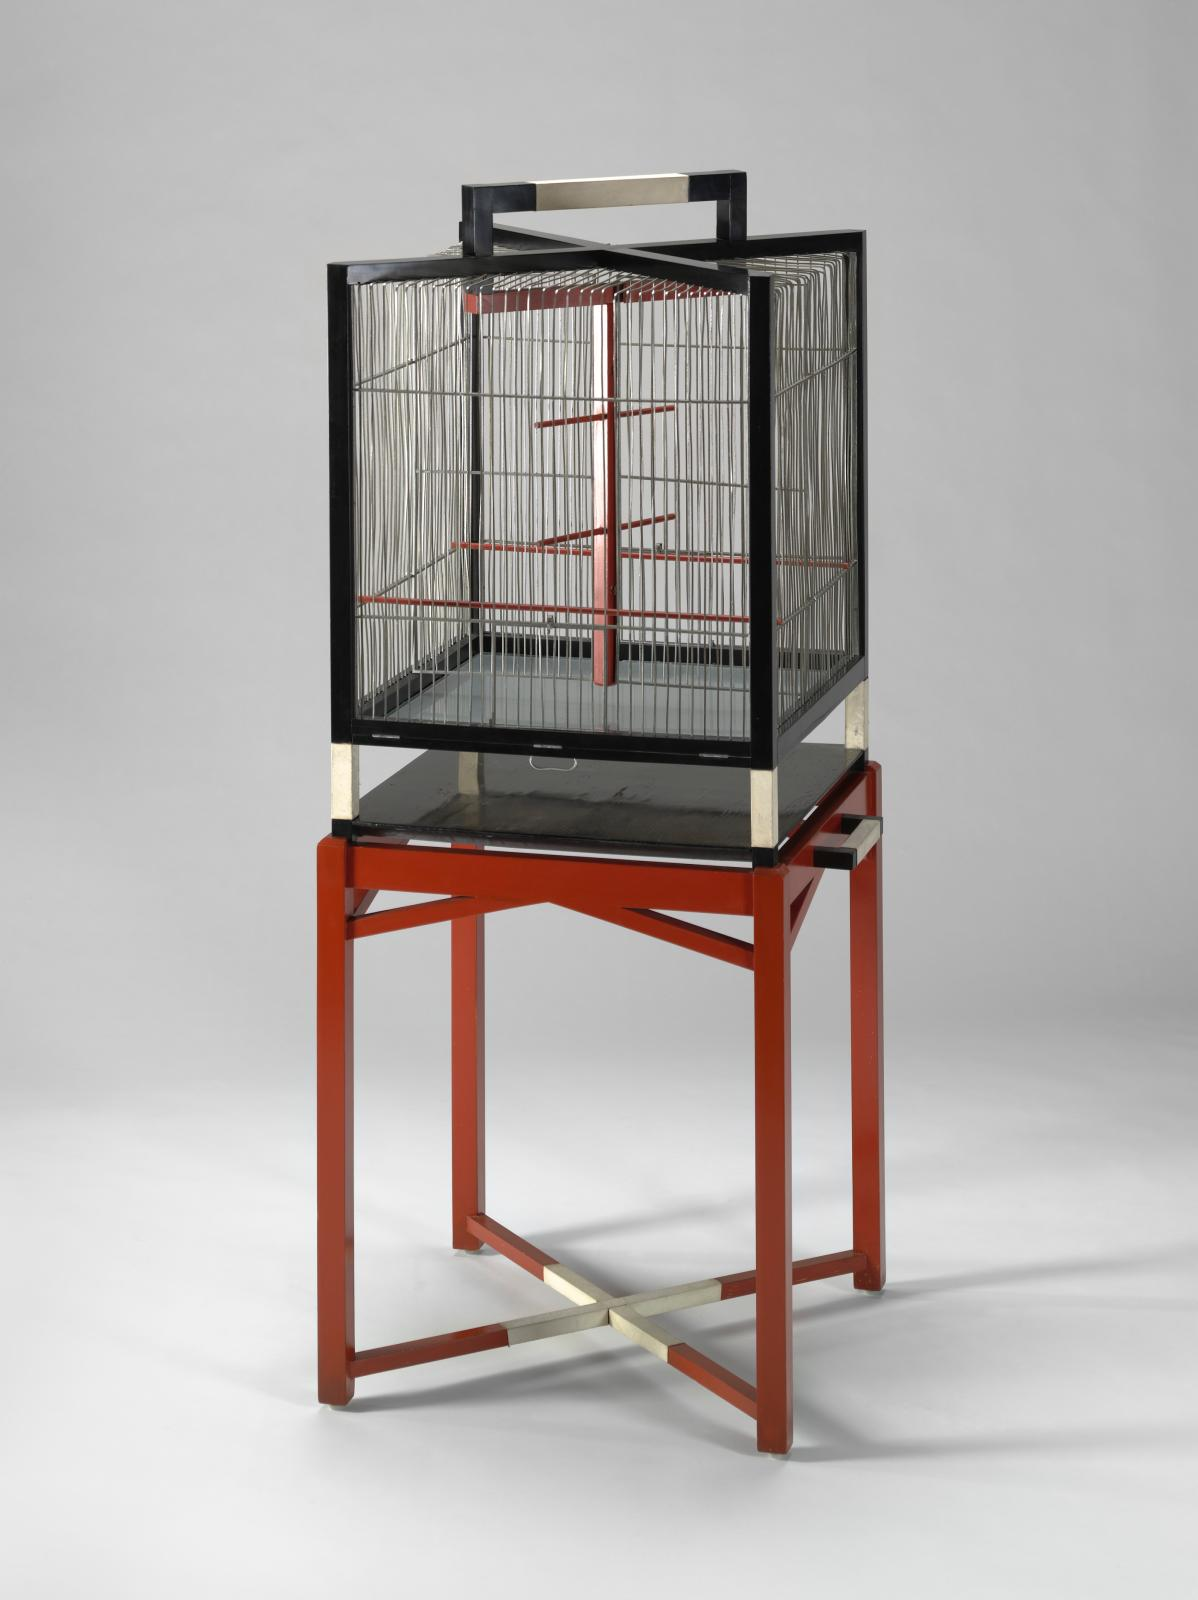 Ebony bird cage lacquered red and black, partially covered in parchment, standing on a red-lacquered base, 1929.© Richmond, Virginia Museu